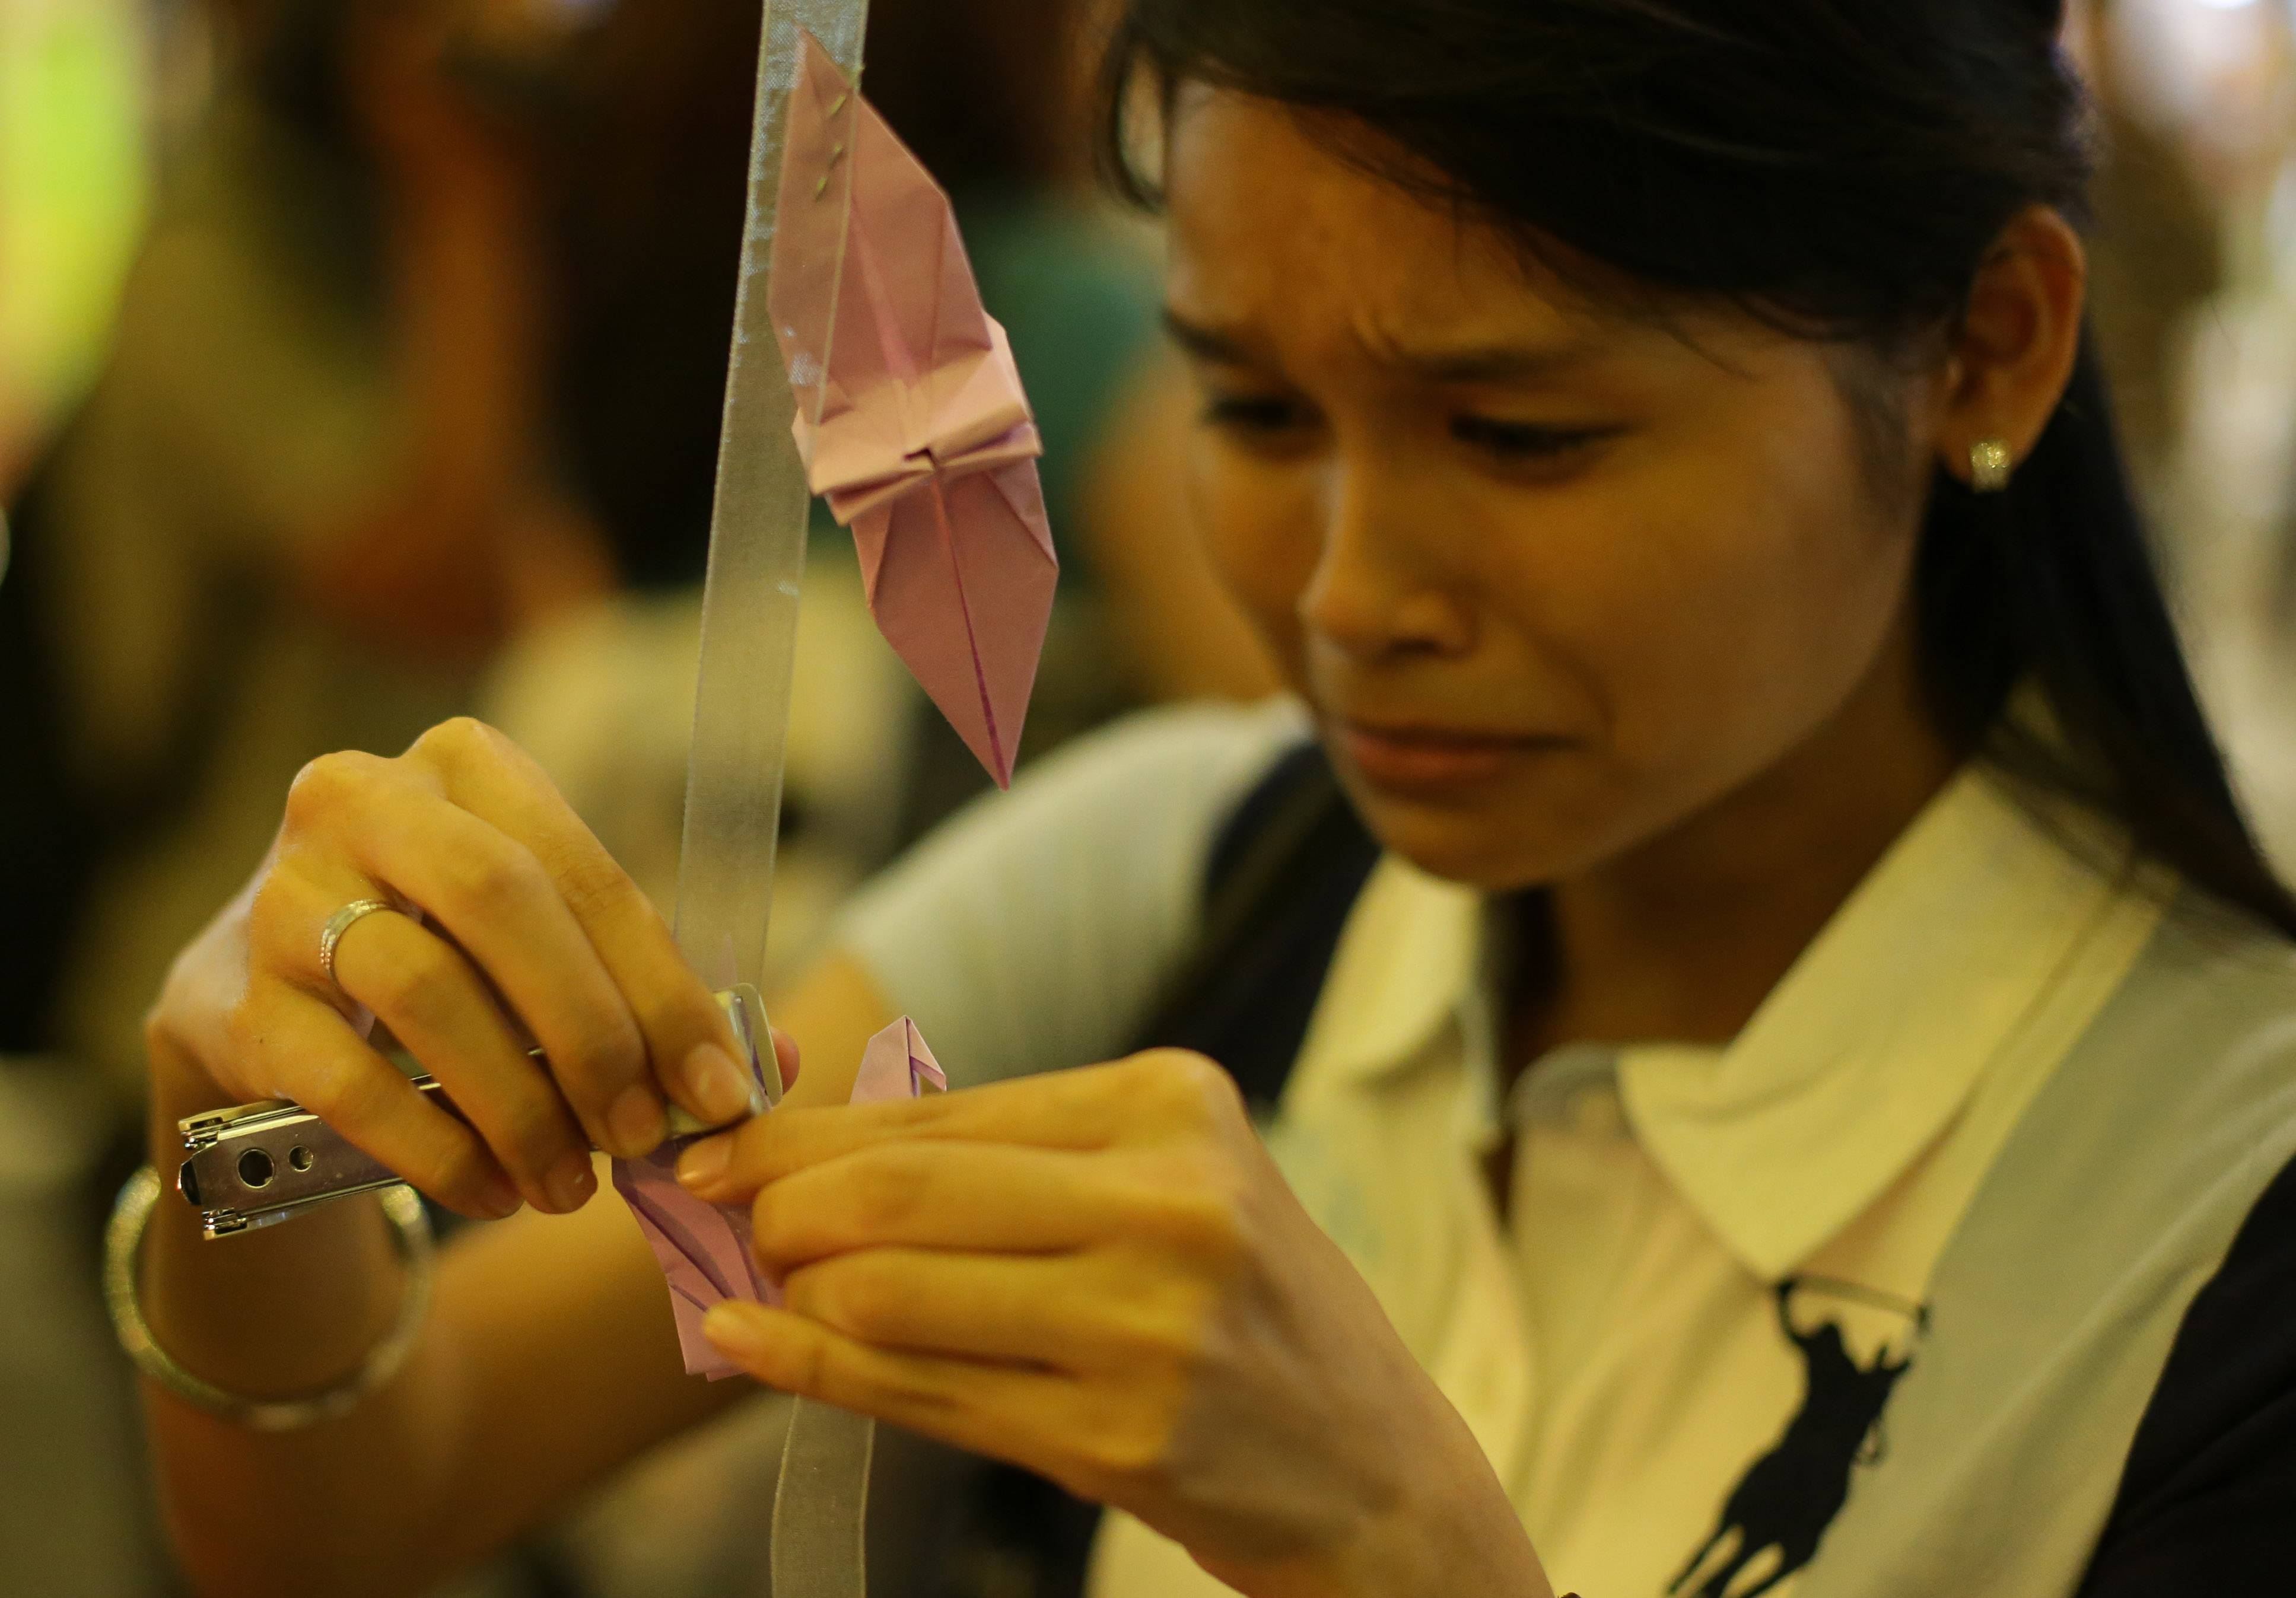 A woman breaks into tears as she places a paper crane as a symbol for hope and healing during a ceremony in memory of passengers on board the missing Malaysia Airlines Flight MH370 in Kuala Lumpur, Malaysia, Thursday.